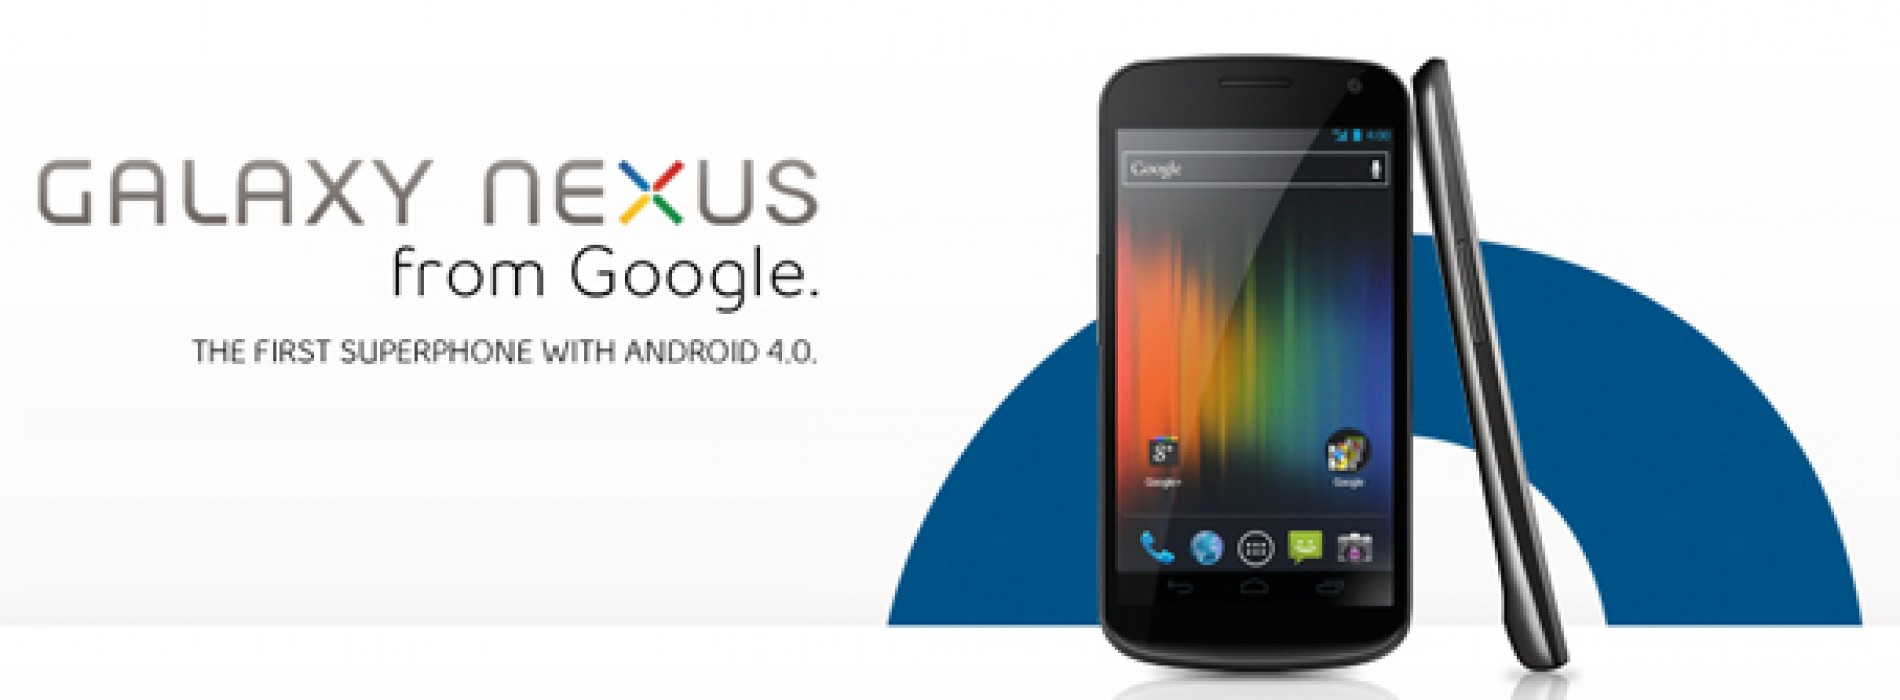 Bell Canada Officially Announces Galaxy Nexus